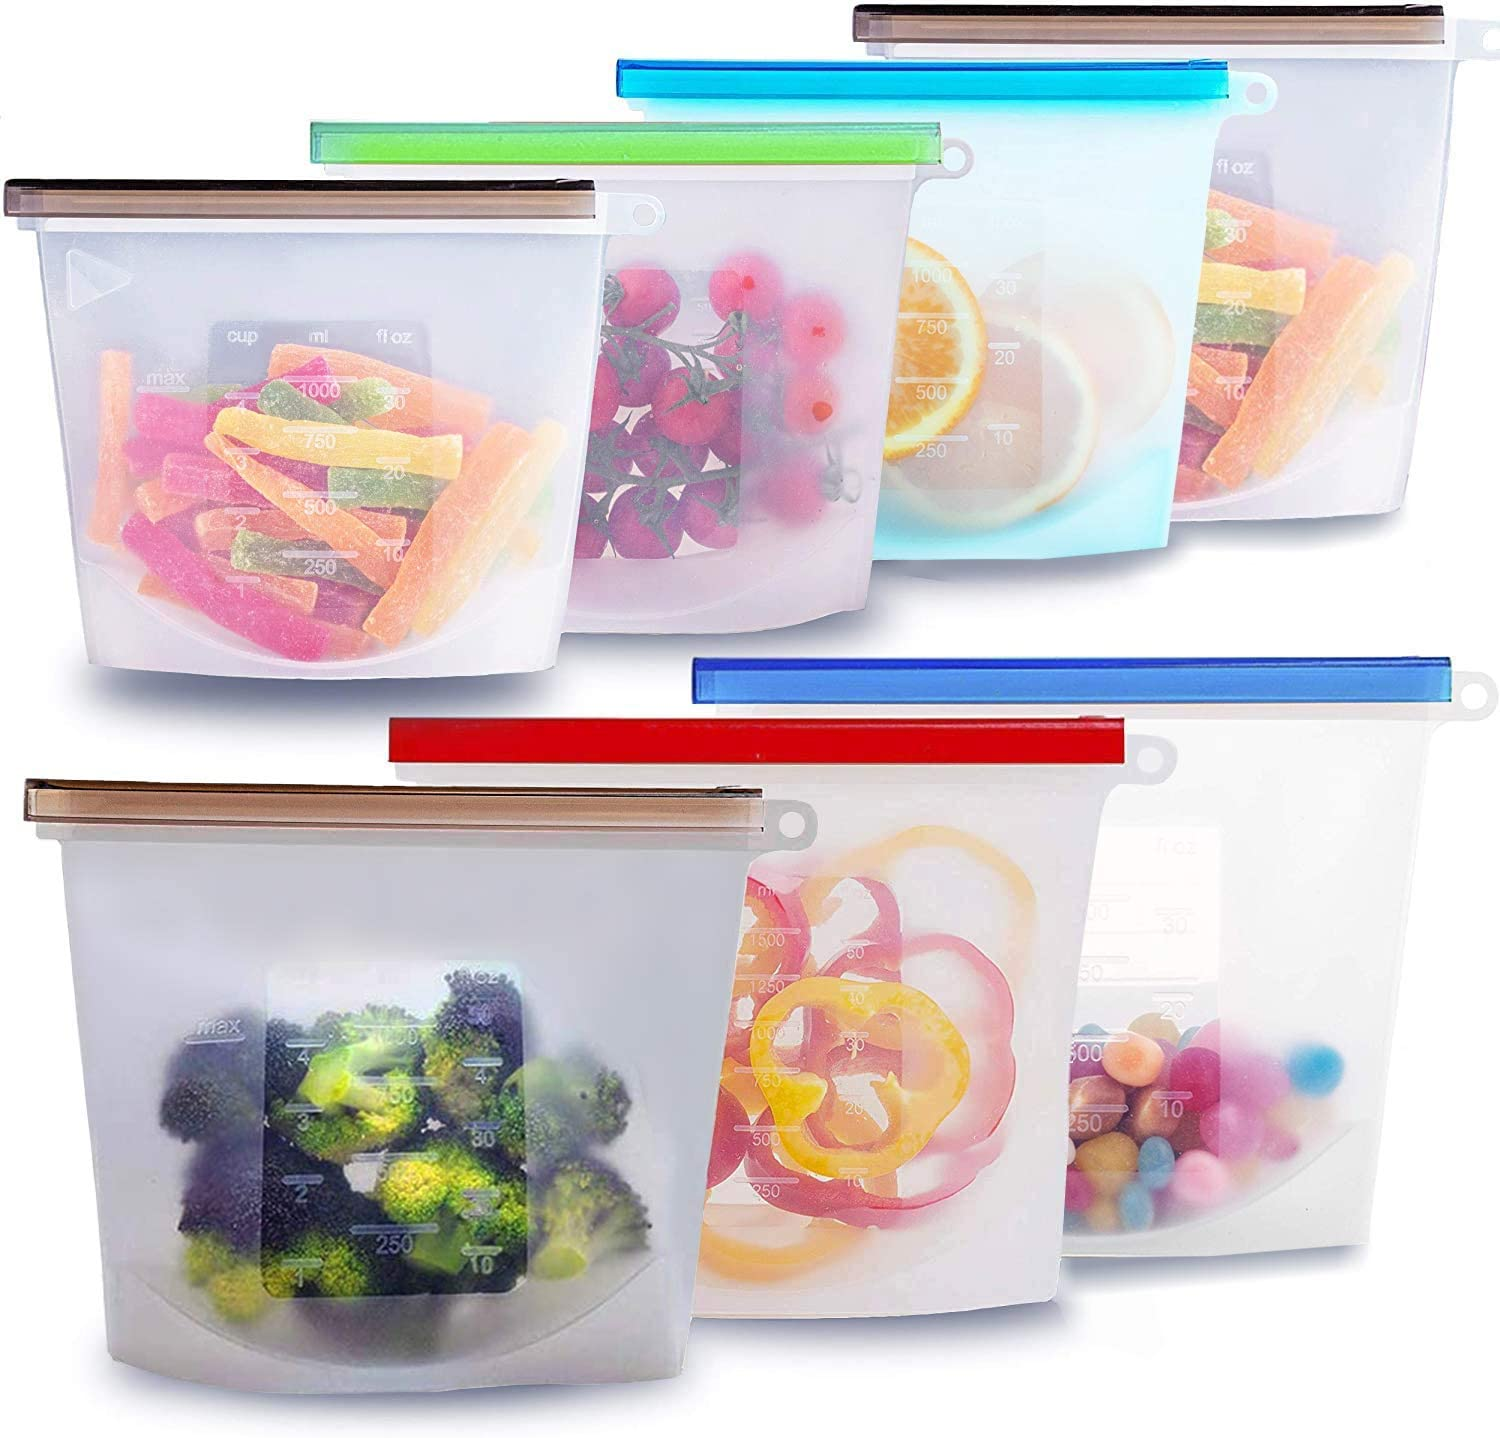 Silicone Bags Reusable Silicone Food Bag 7pcs Reusable Sandwich Bags Ziplock Bags Silicone Storage Bags Silicon Containers Plastic Conteiner Freezer Gallon Size Zip Snack Sous Vide Lunch…